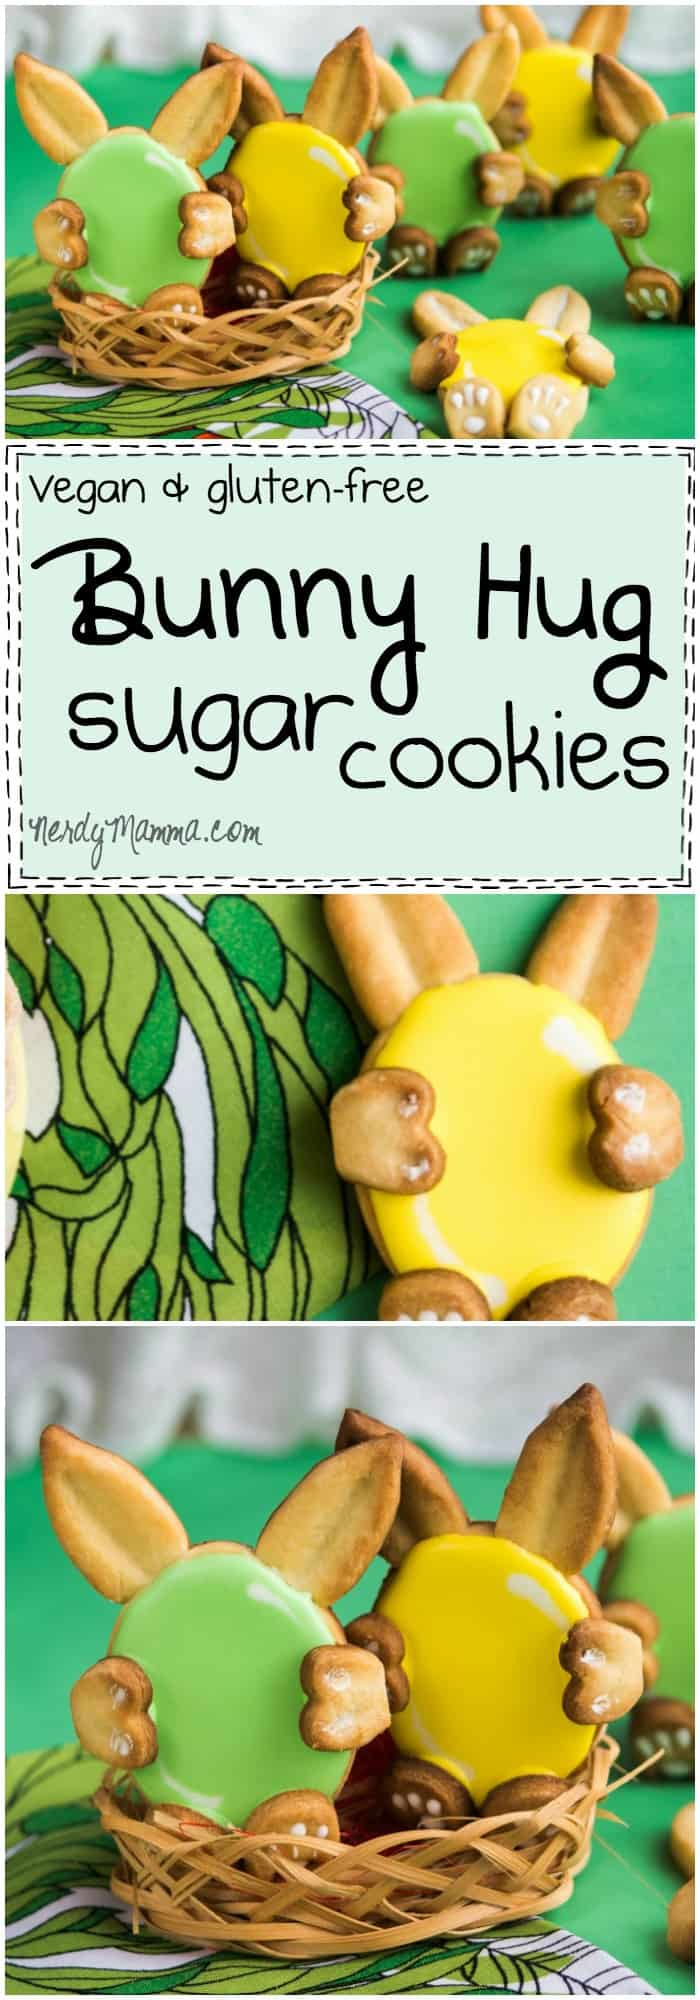 I can't get enough of these cute little bunny hug cookies! They're adorable! And they're vegan and gluten-free sugar cookies. So, kinda awesome, right!